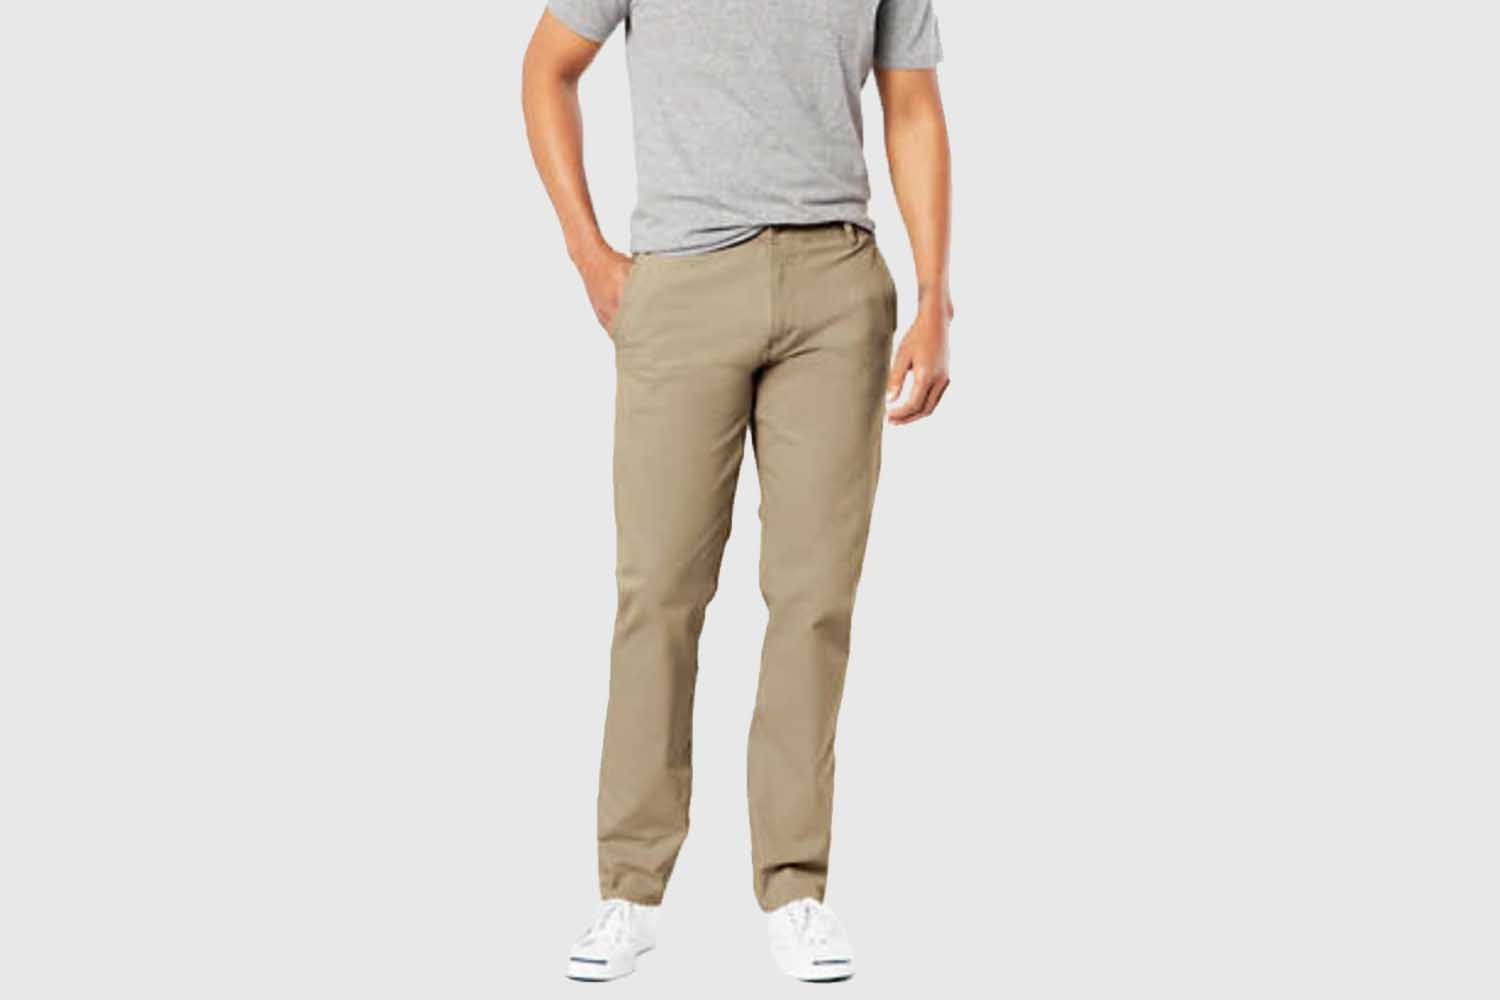 In Defense of Dockers, Which Are Cooler Than You Think and Currently Very Cheap